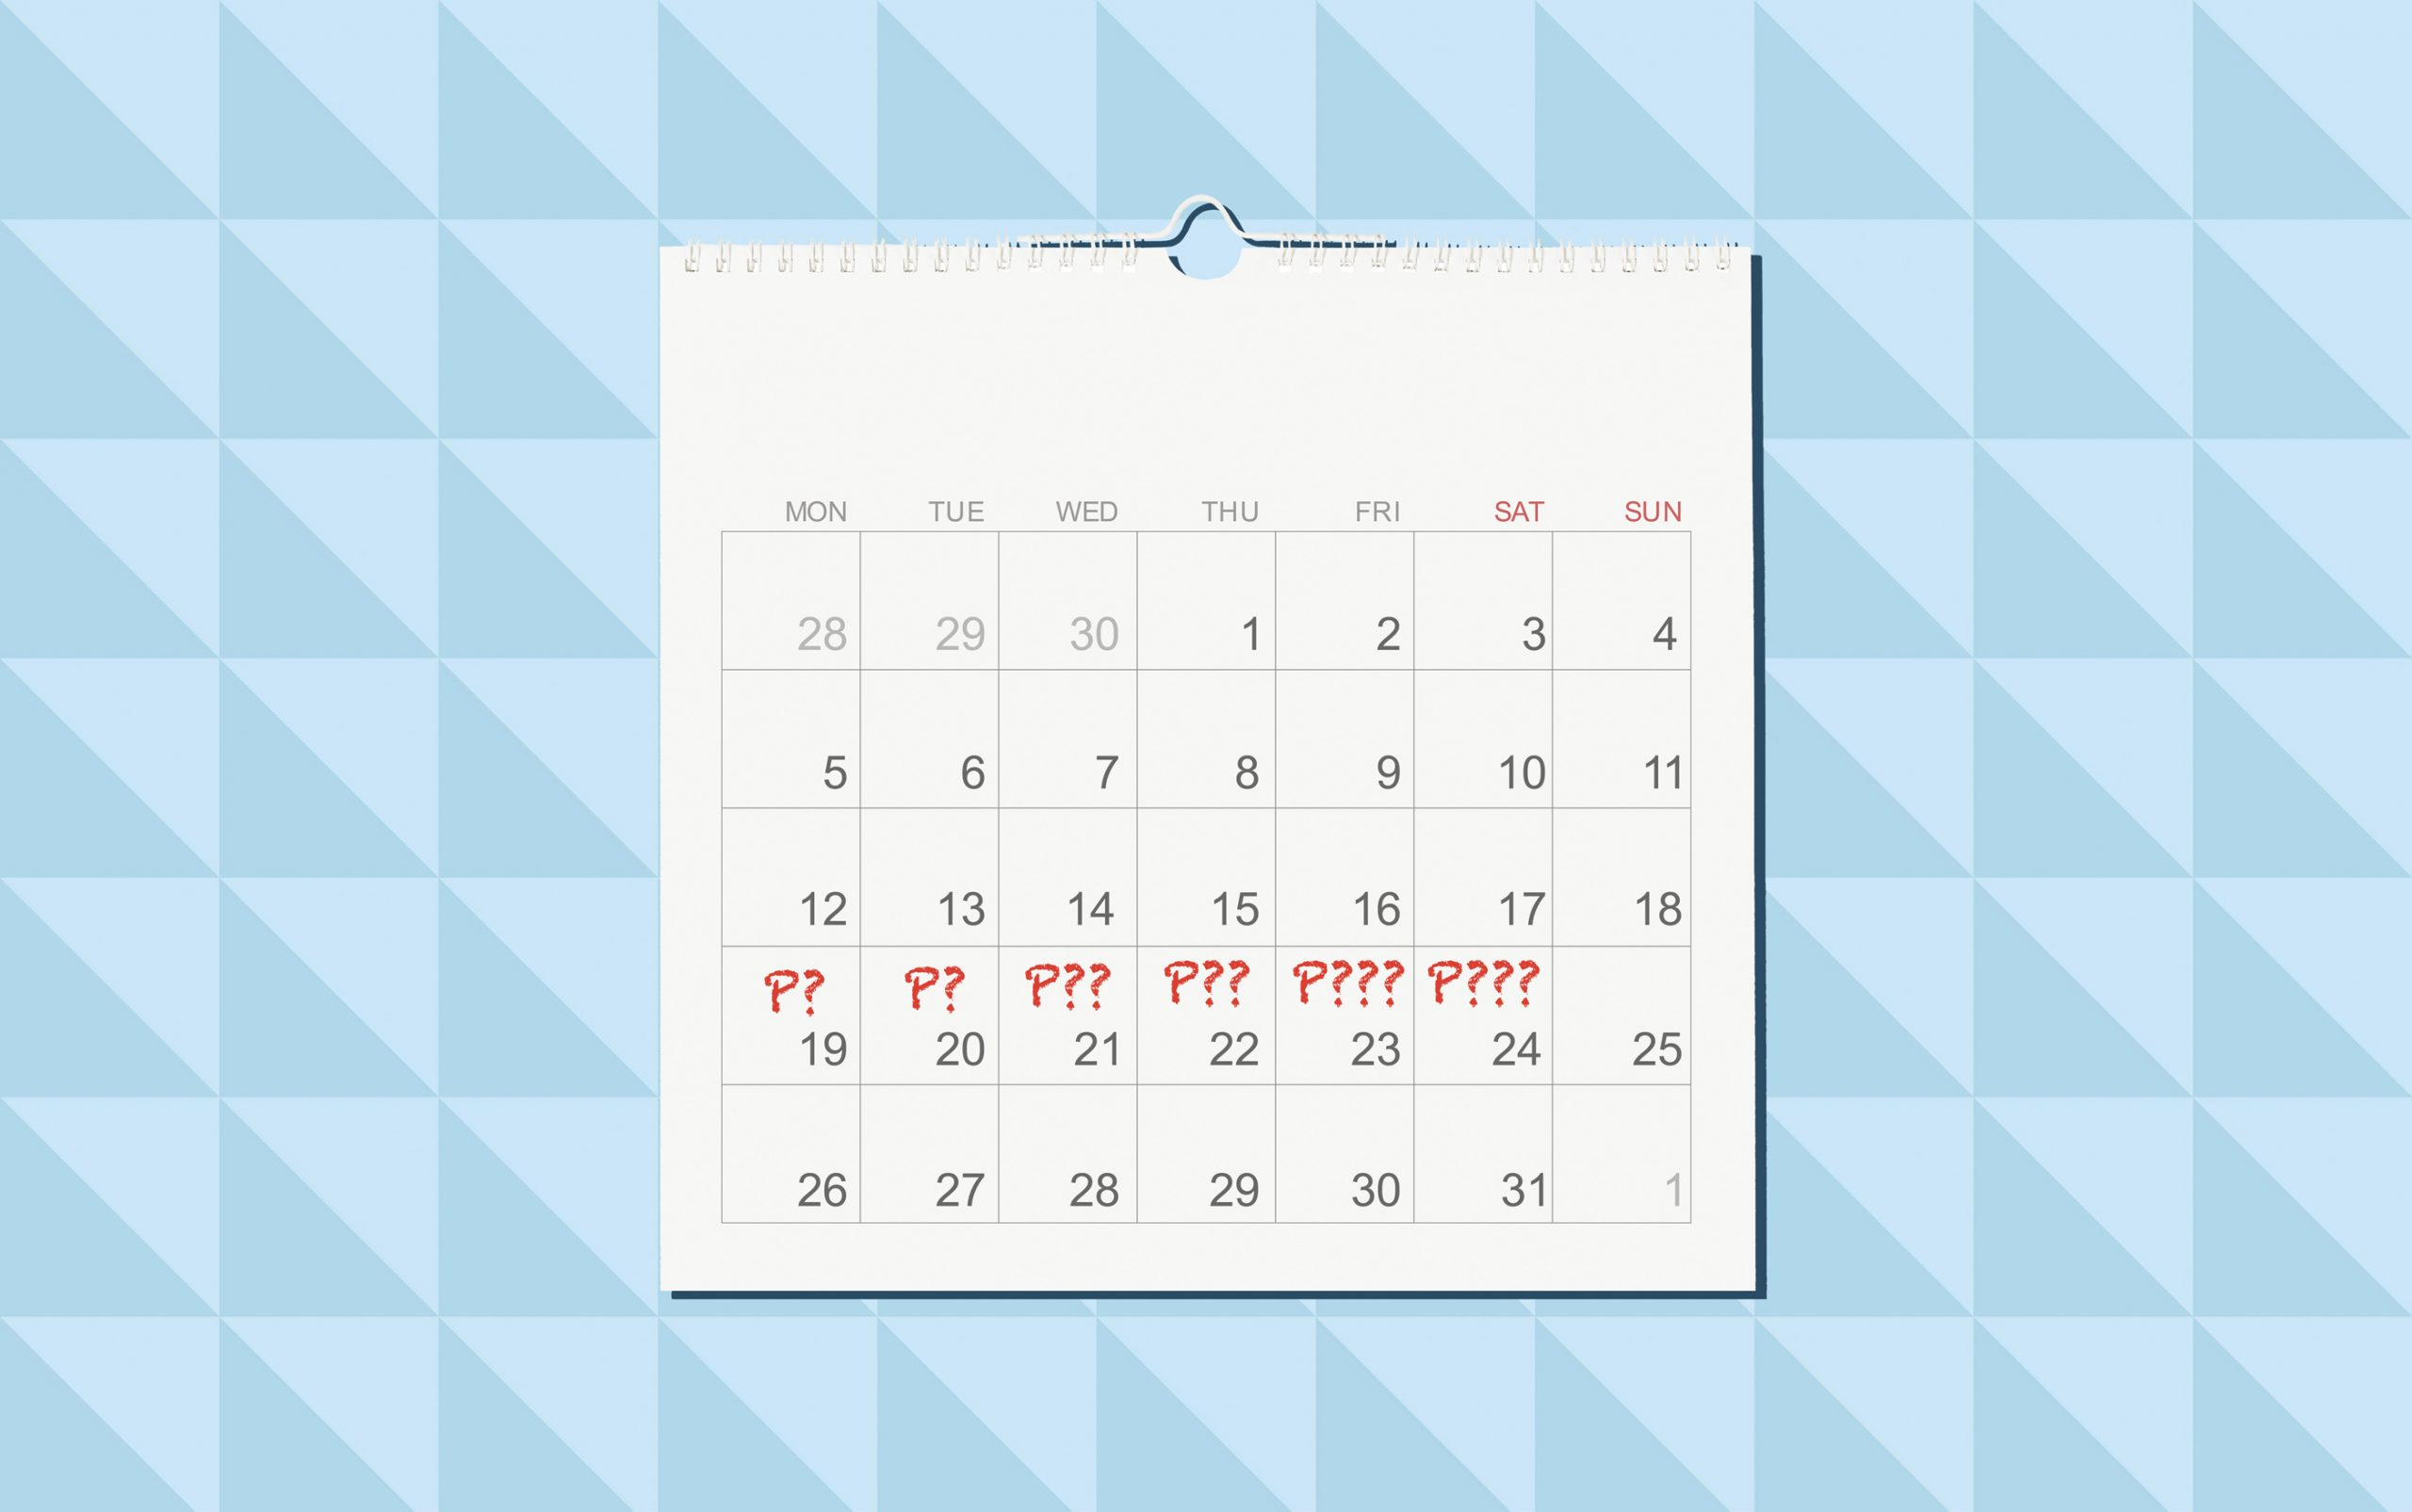 7 Reasons For A Missed Period After Stopping Birth Control